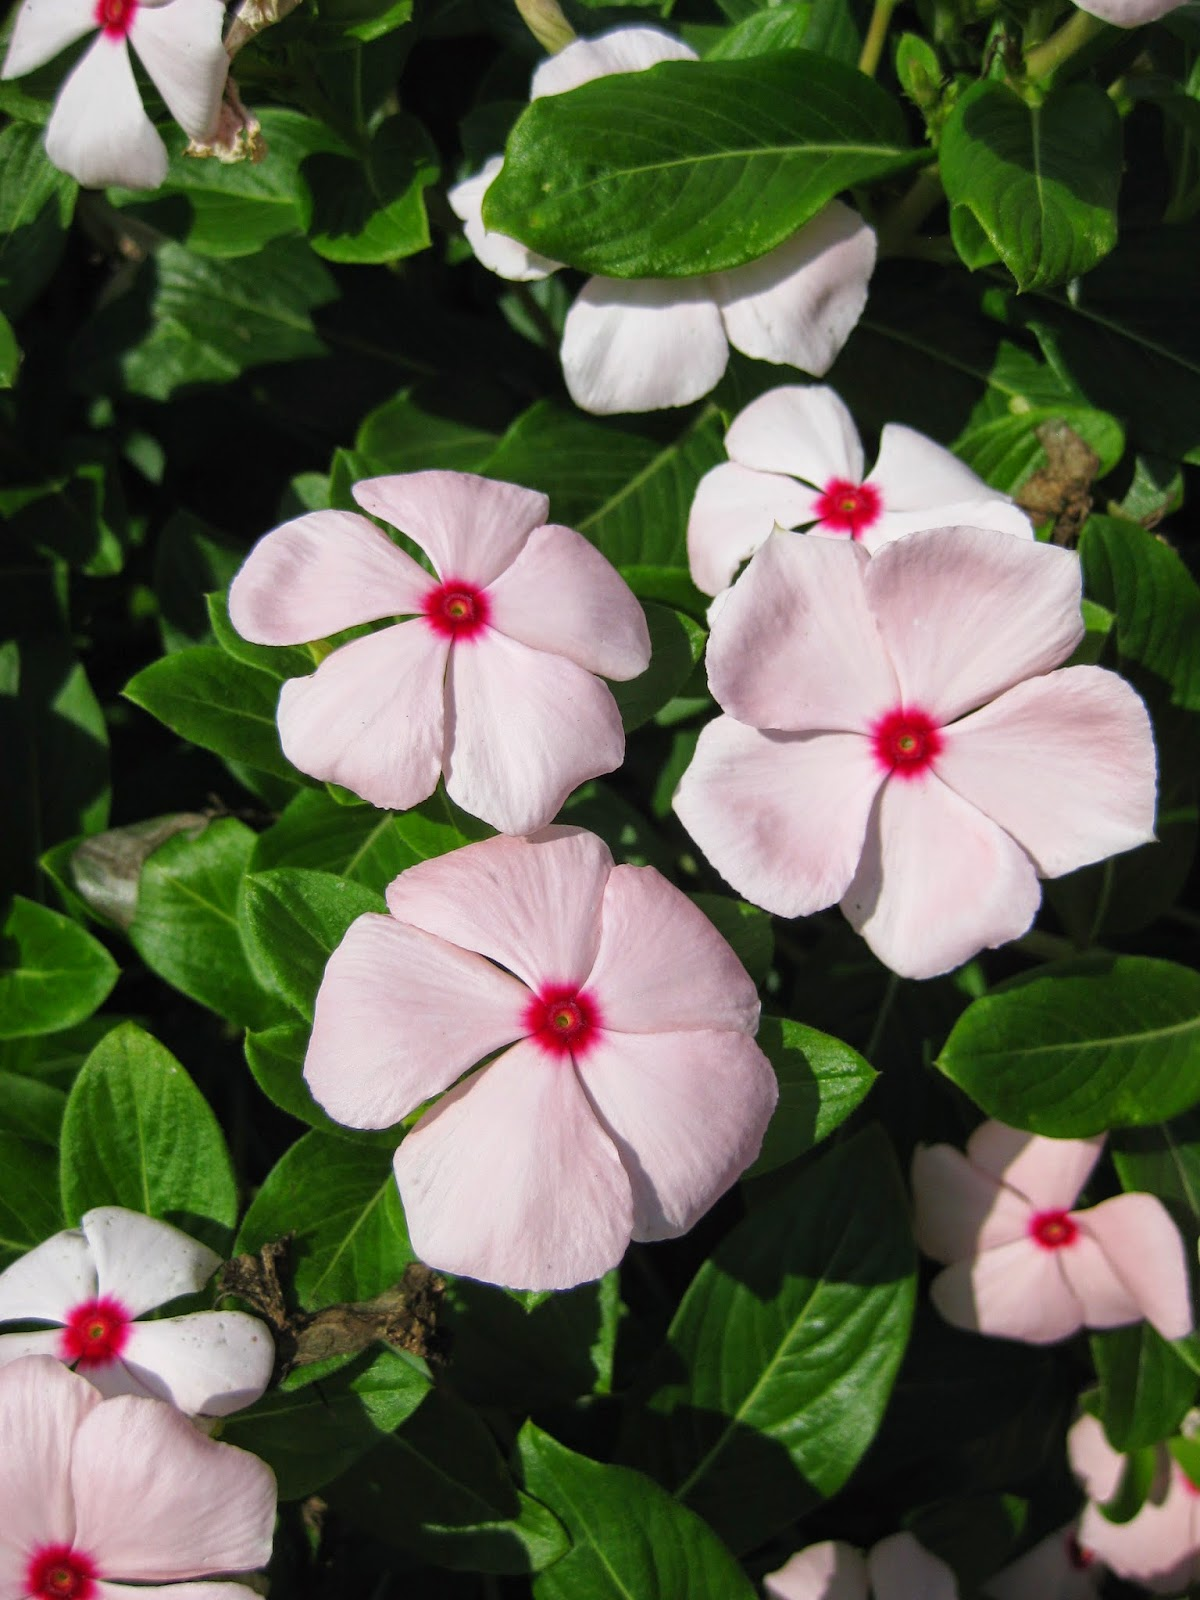 Annual vinca catharanthus roseus rotary botanical gardens it felt like early may today with temperatures near 60 degrees f and ample sunshine the birds were chirping happily and the snow has been melting steadily izmirmasajfo Gallery